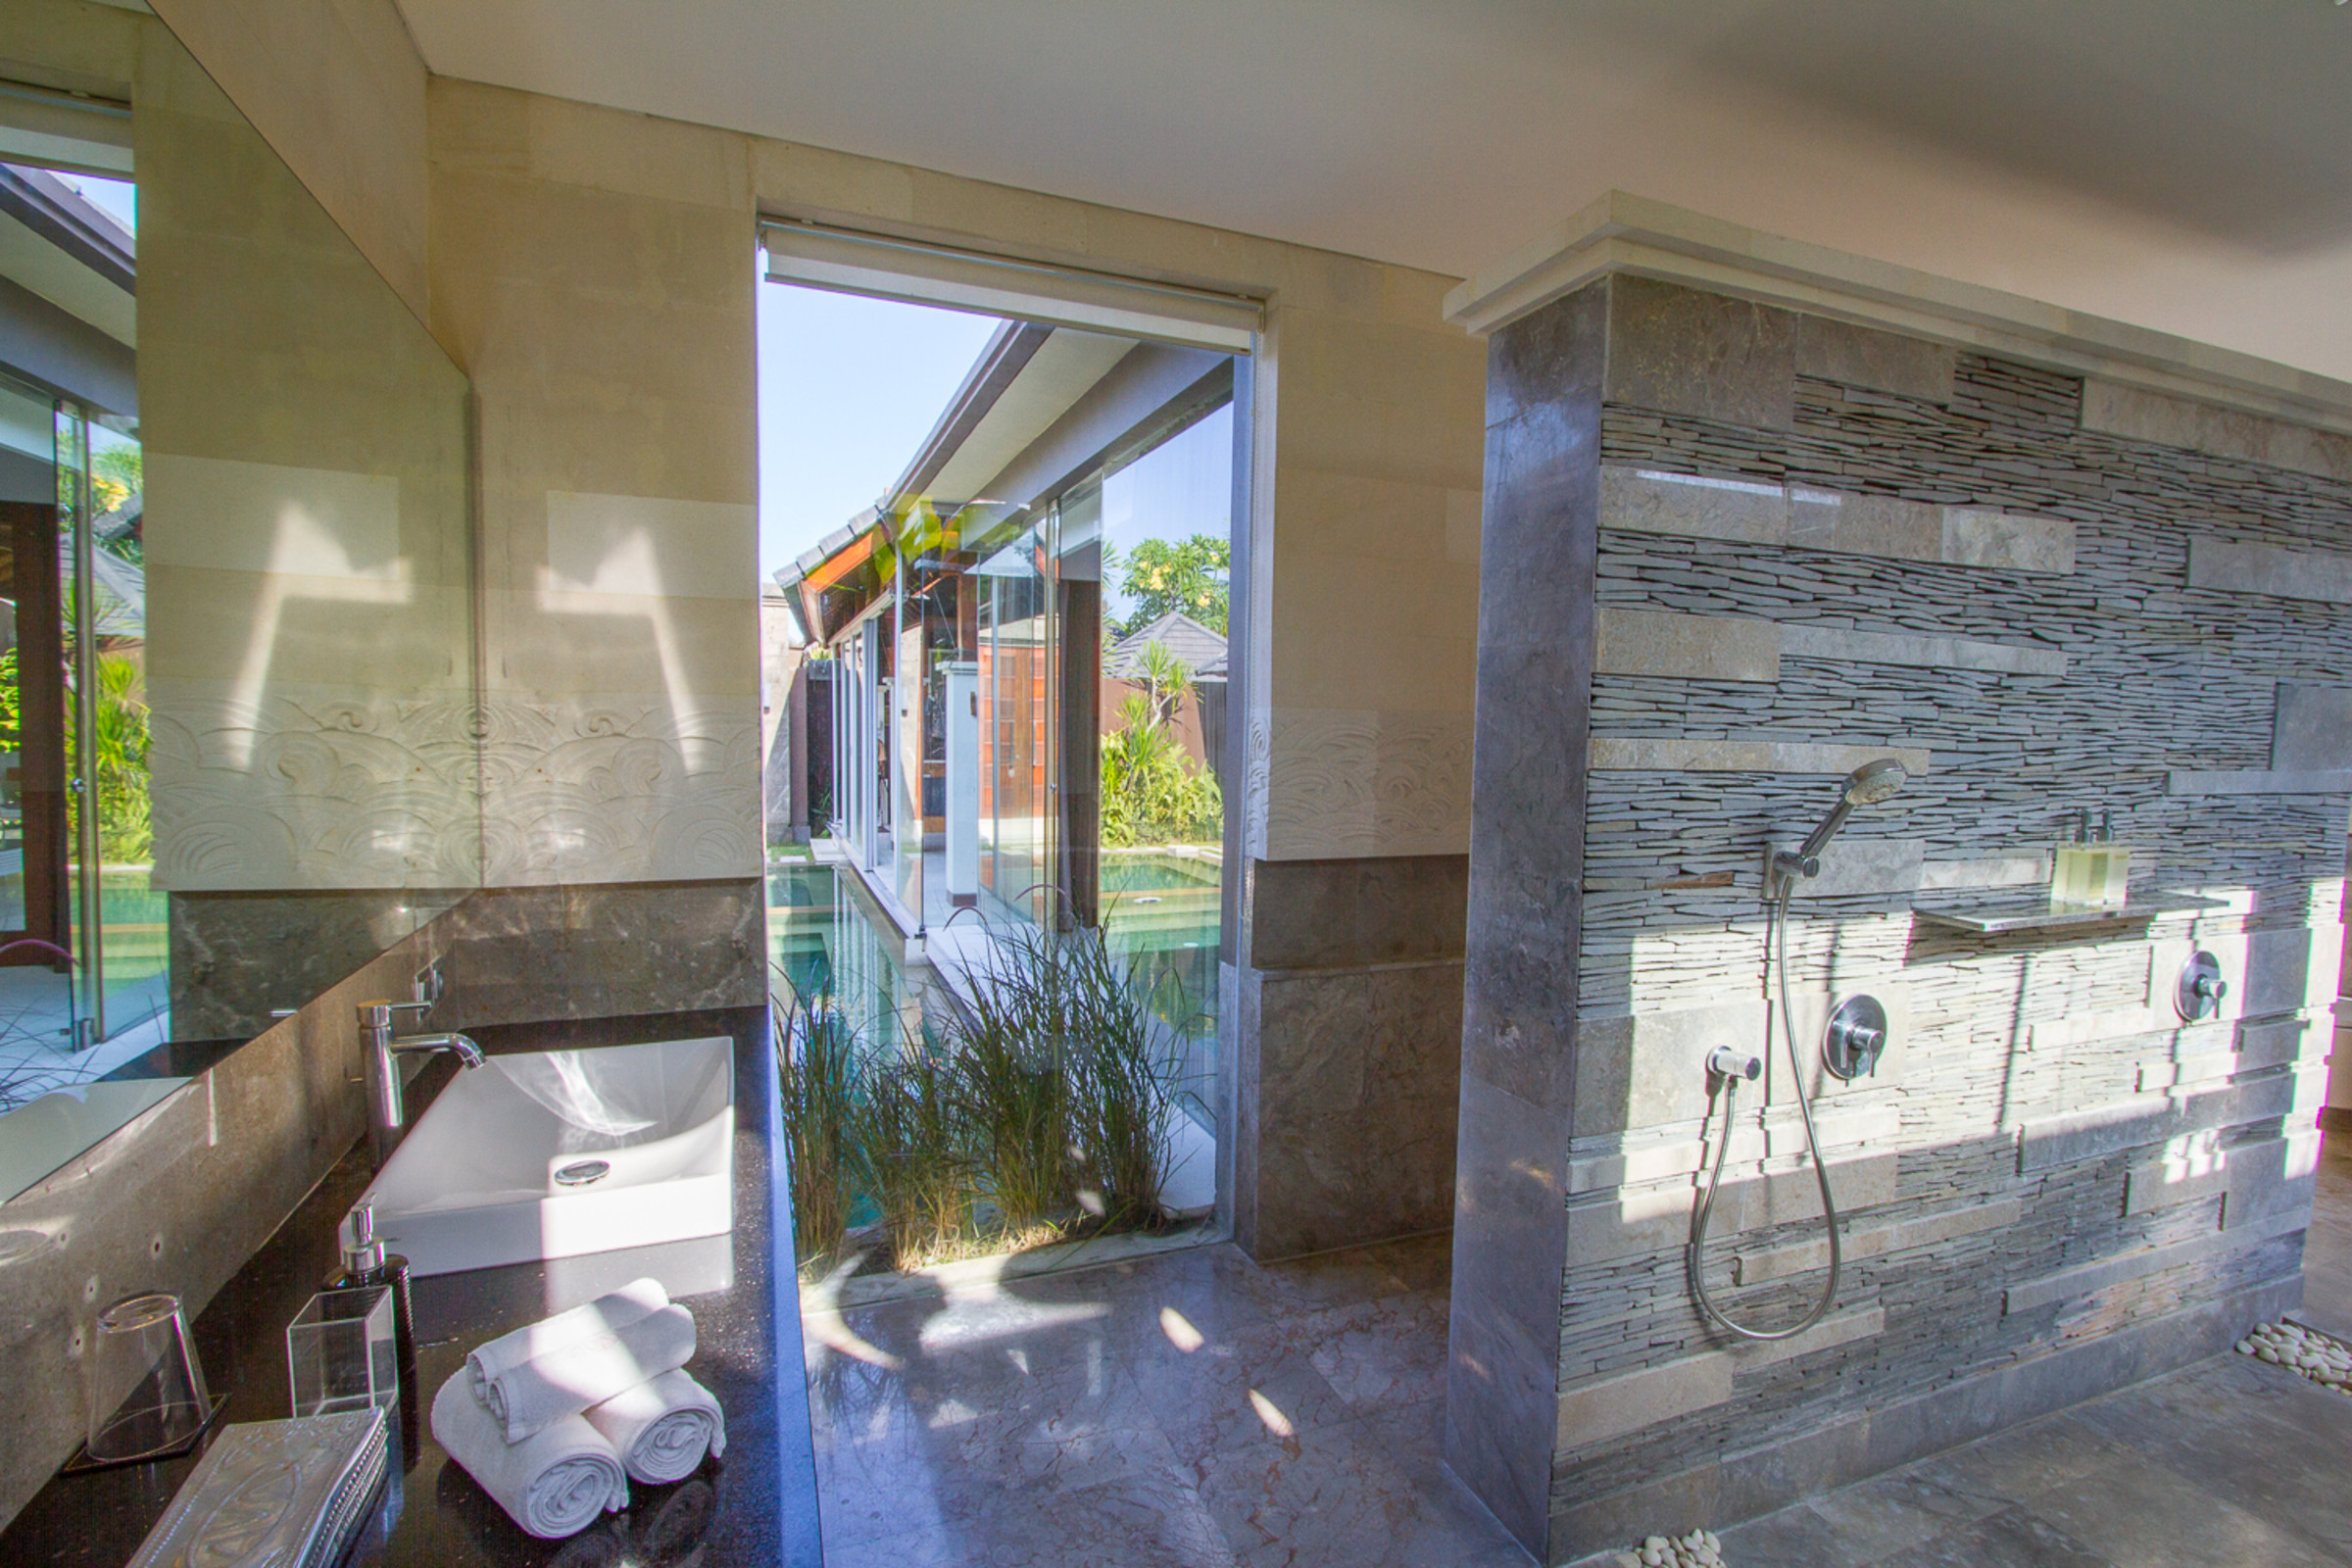 Meuble Salle De Bain Bath And Kitchen ~ Villa Ava Iii Seminyak Bali Rental Villas Villas In Bali